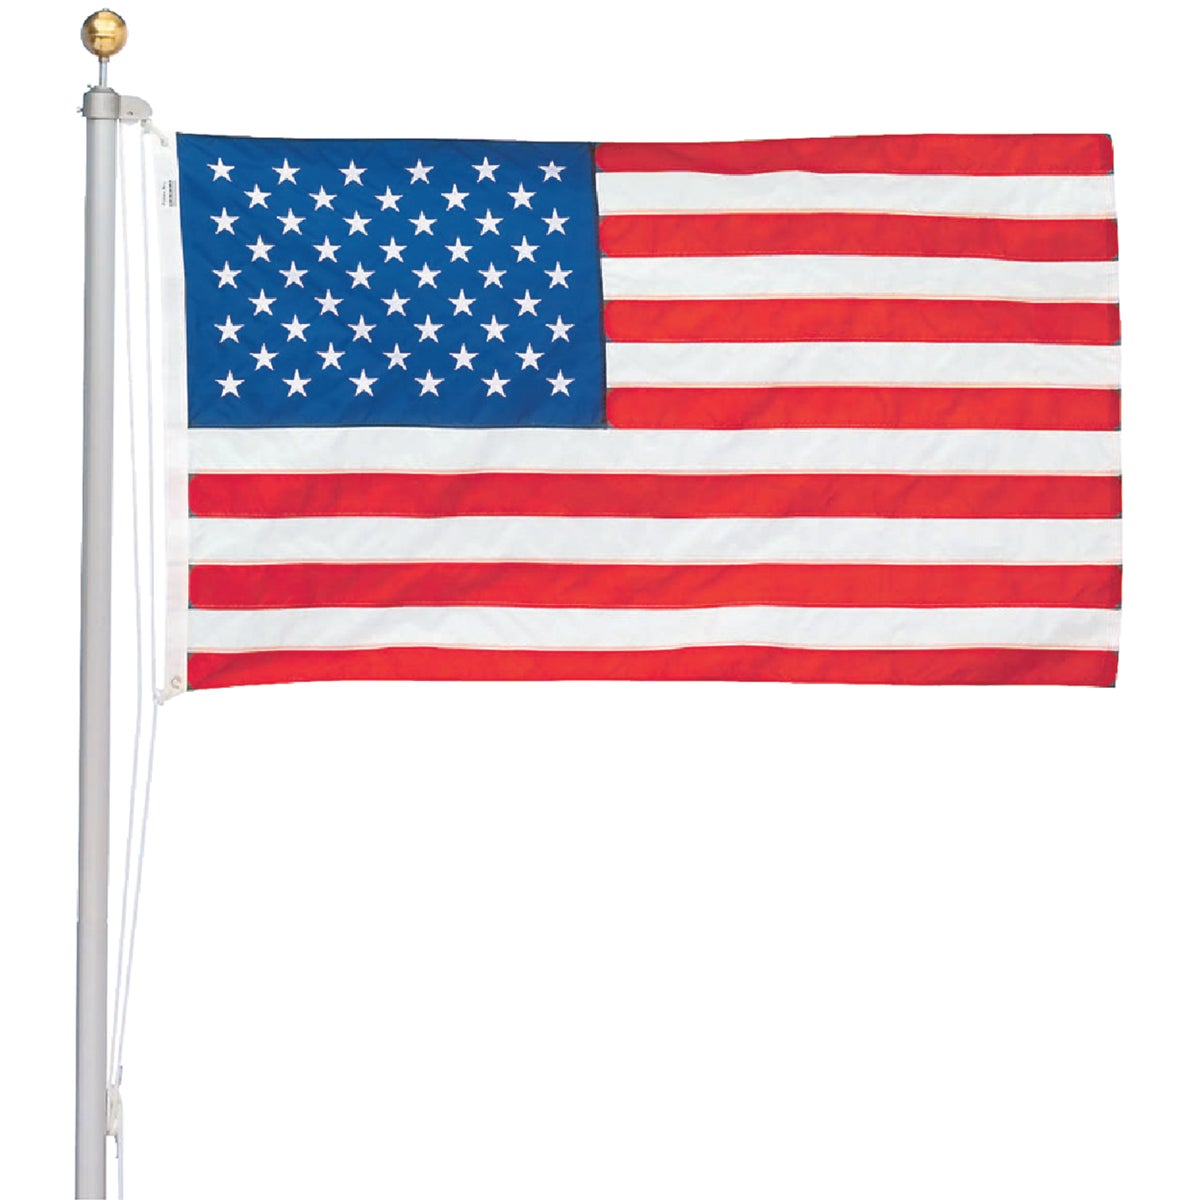 20' ALUM FLAG POLE KIT